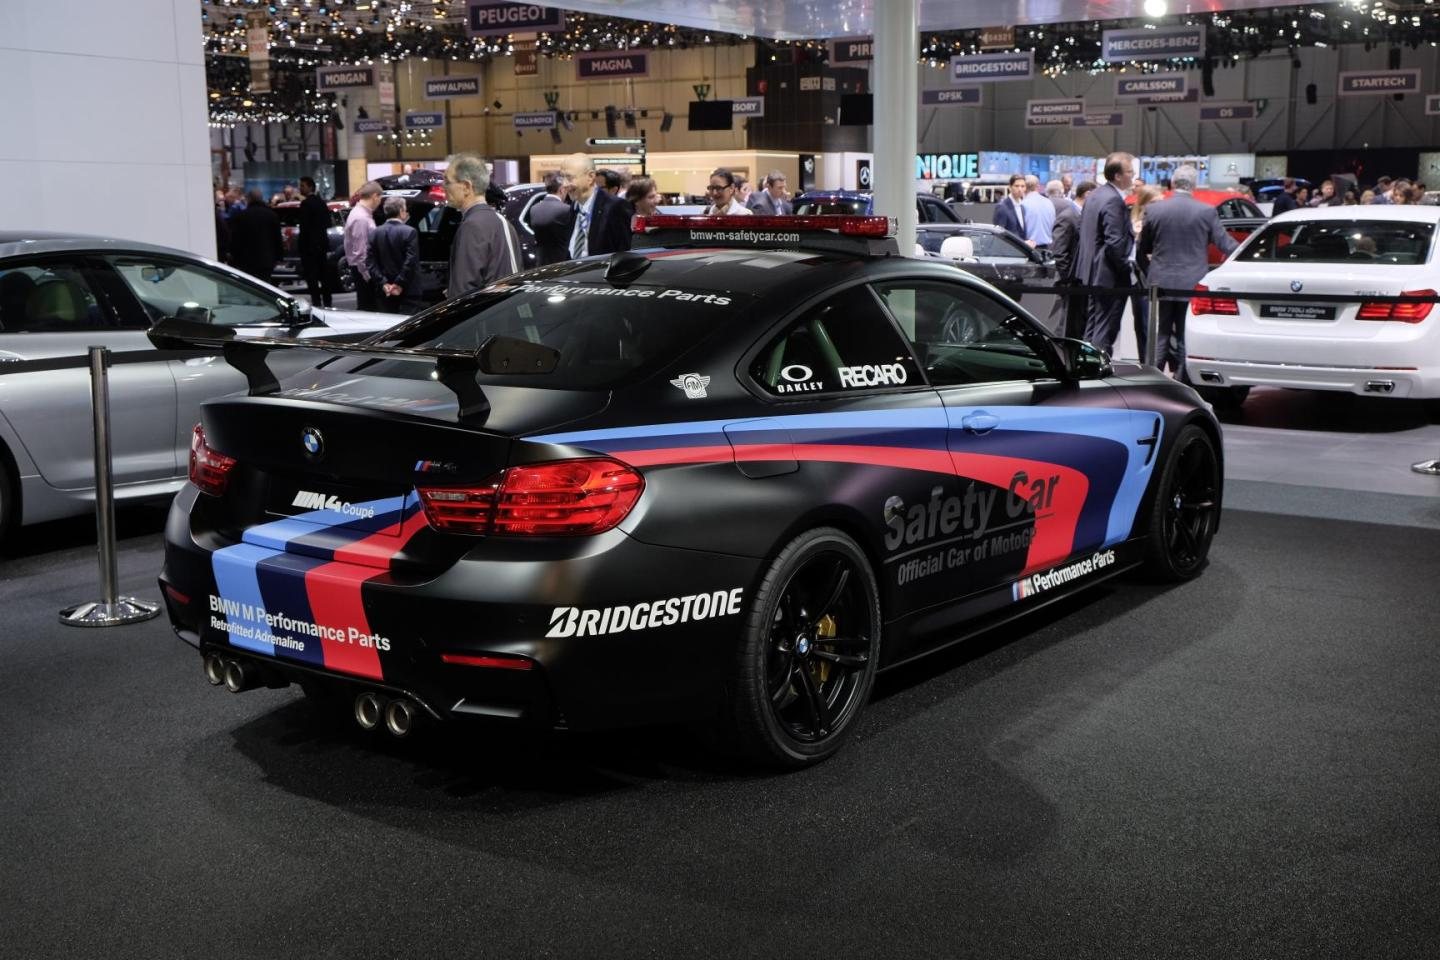 auto show de ginebra 2015 bmw m4 coup safety car motogp 2015 un escolta de lujo lista de. Black Bedroom Furniture Sets. Home Design Ideas